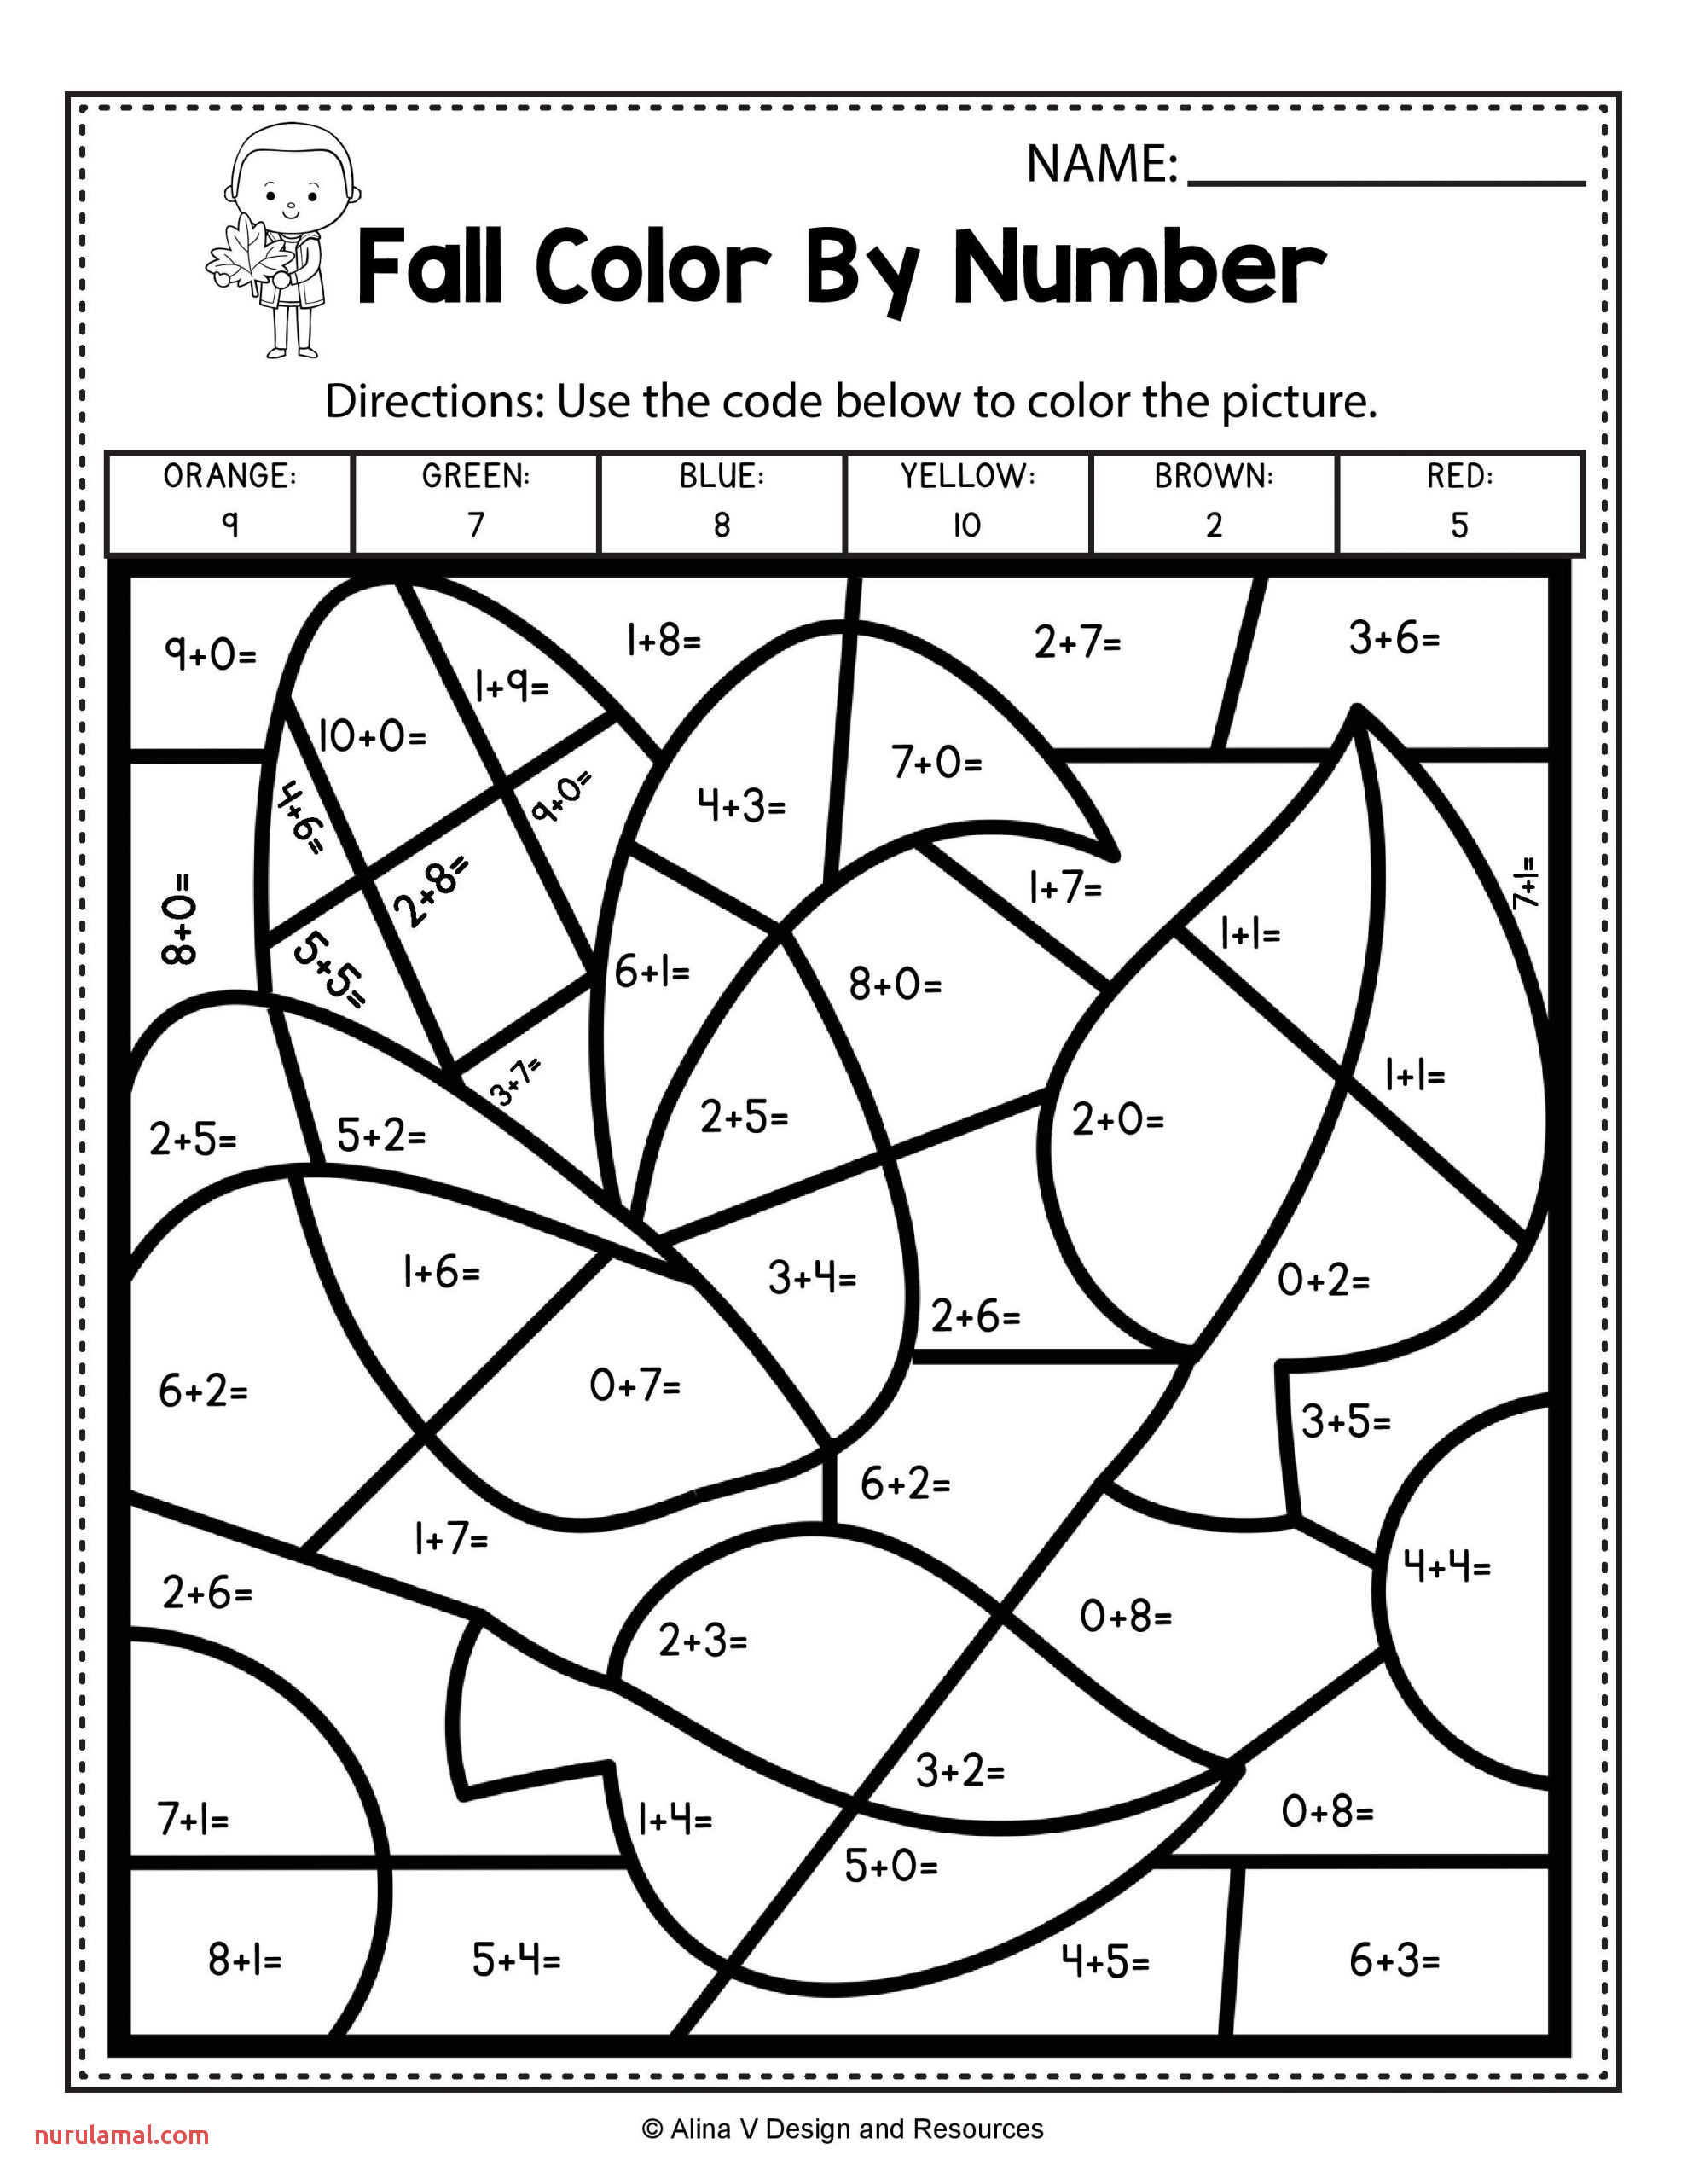 4th Grade Abeka Math Worksheets Abeka Worksheets for K4 Printable and Activities 4th Grade